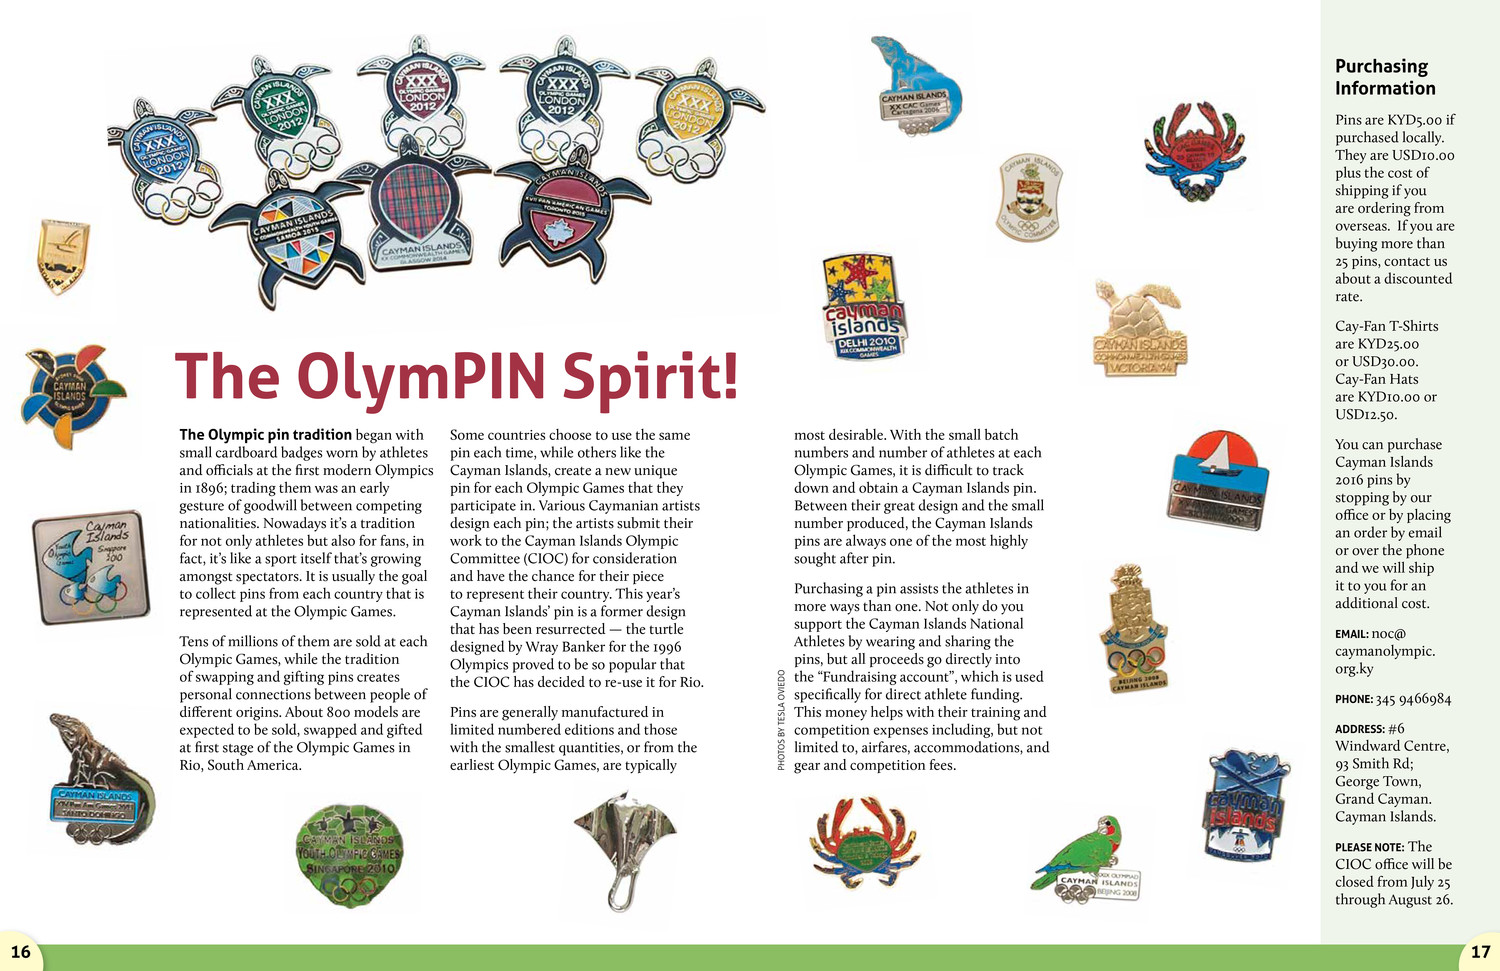 Olympic athletes and spectators enjoy collecting commemorative pins. This spread went into the history of pins, and highlighted a selection of them.